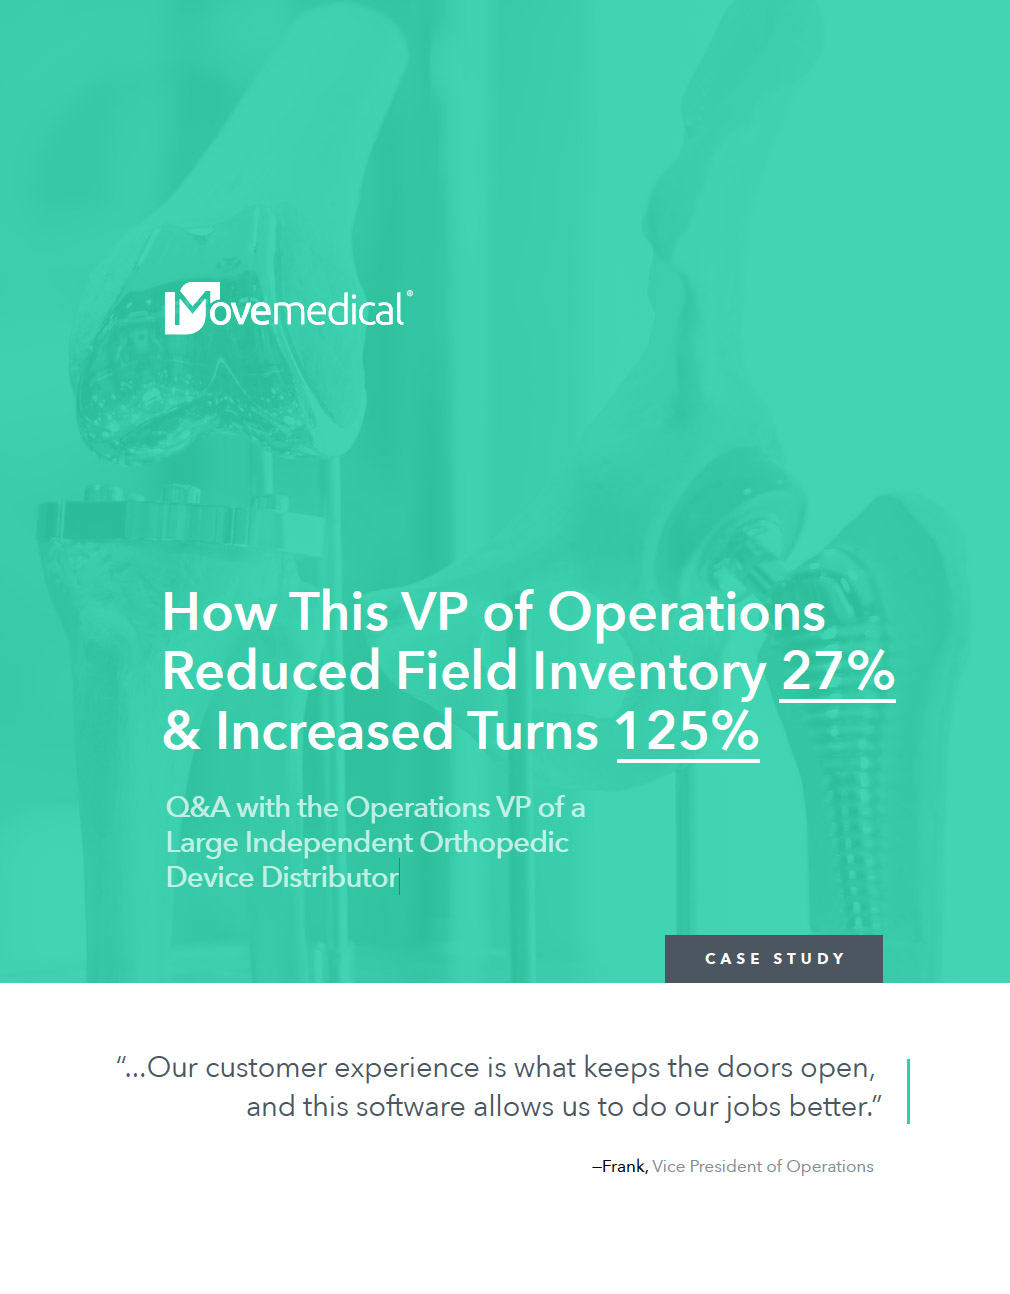 Case Study: How This VP of Operations Reduced Field Inventory 27%